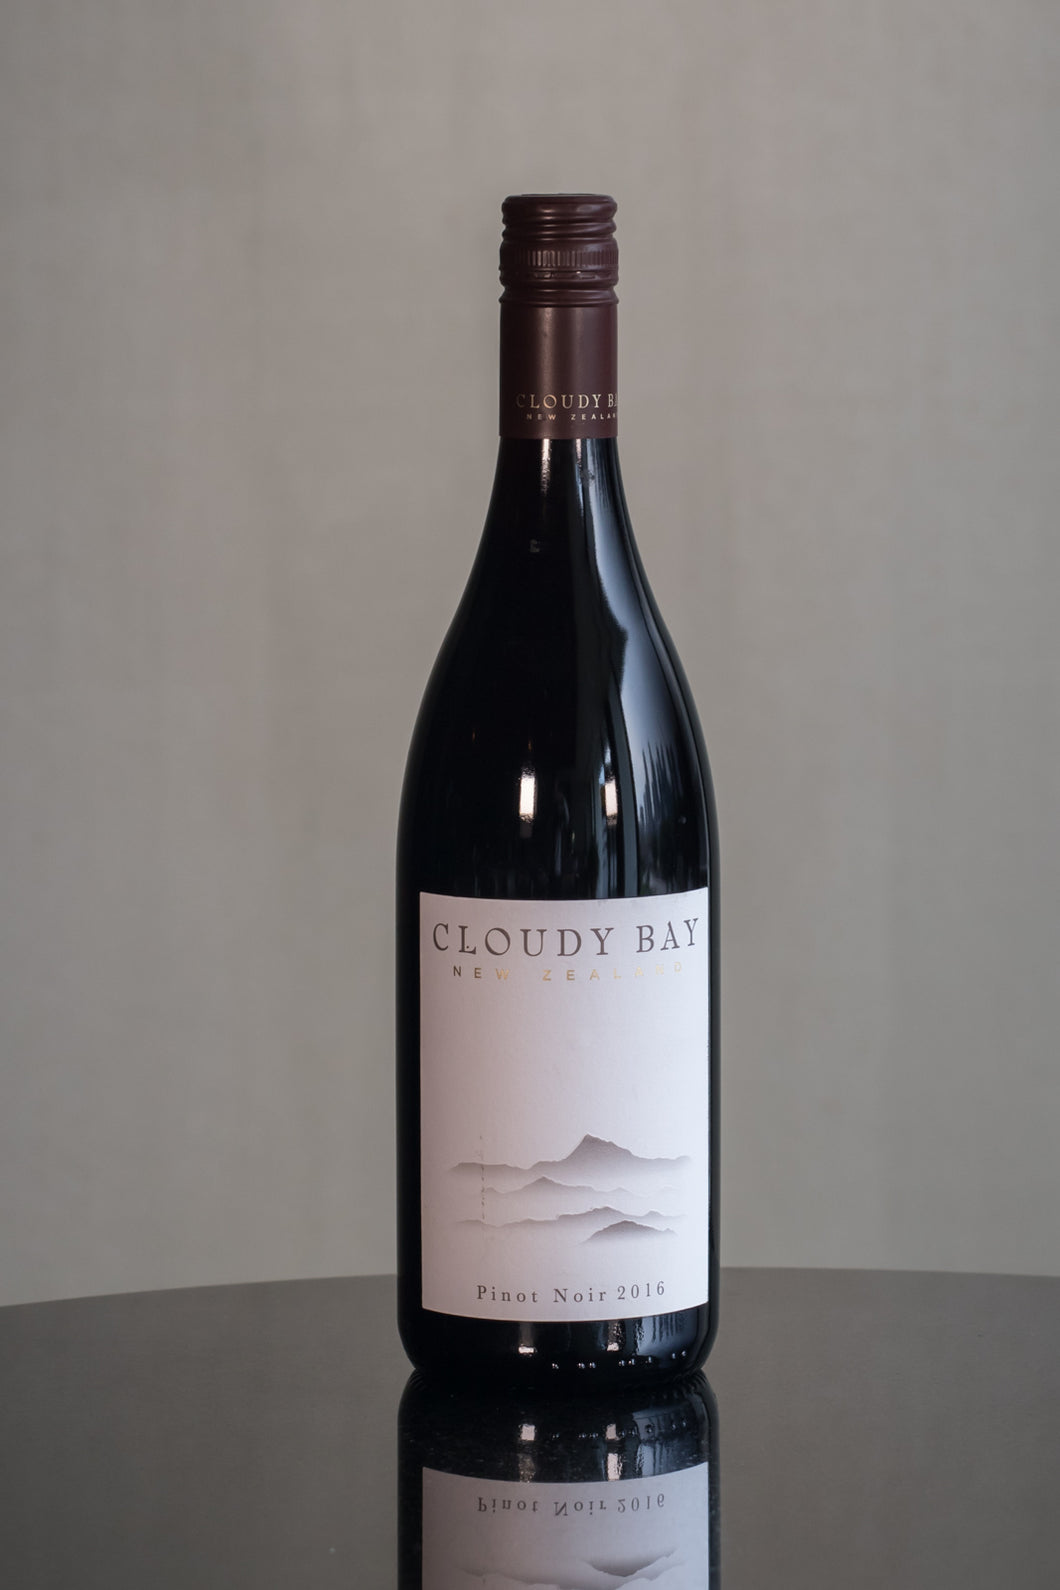 Cloudy Bay, Pinot Noir